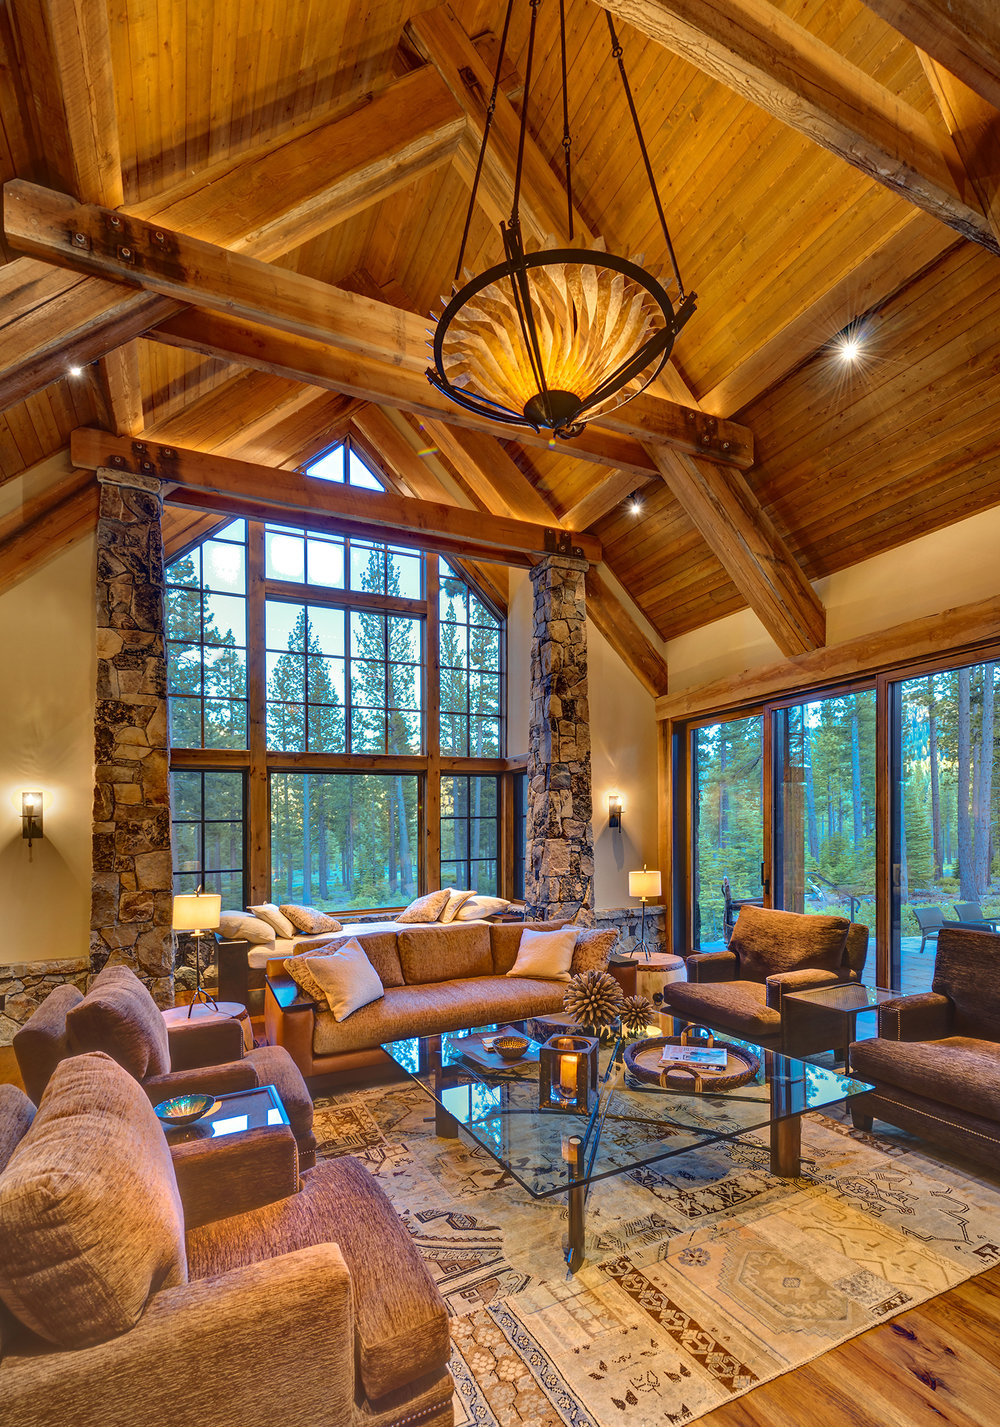 Lot 182_Living Room_Wood Ceilings_Wood Beams_Windows.jpg